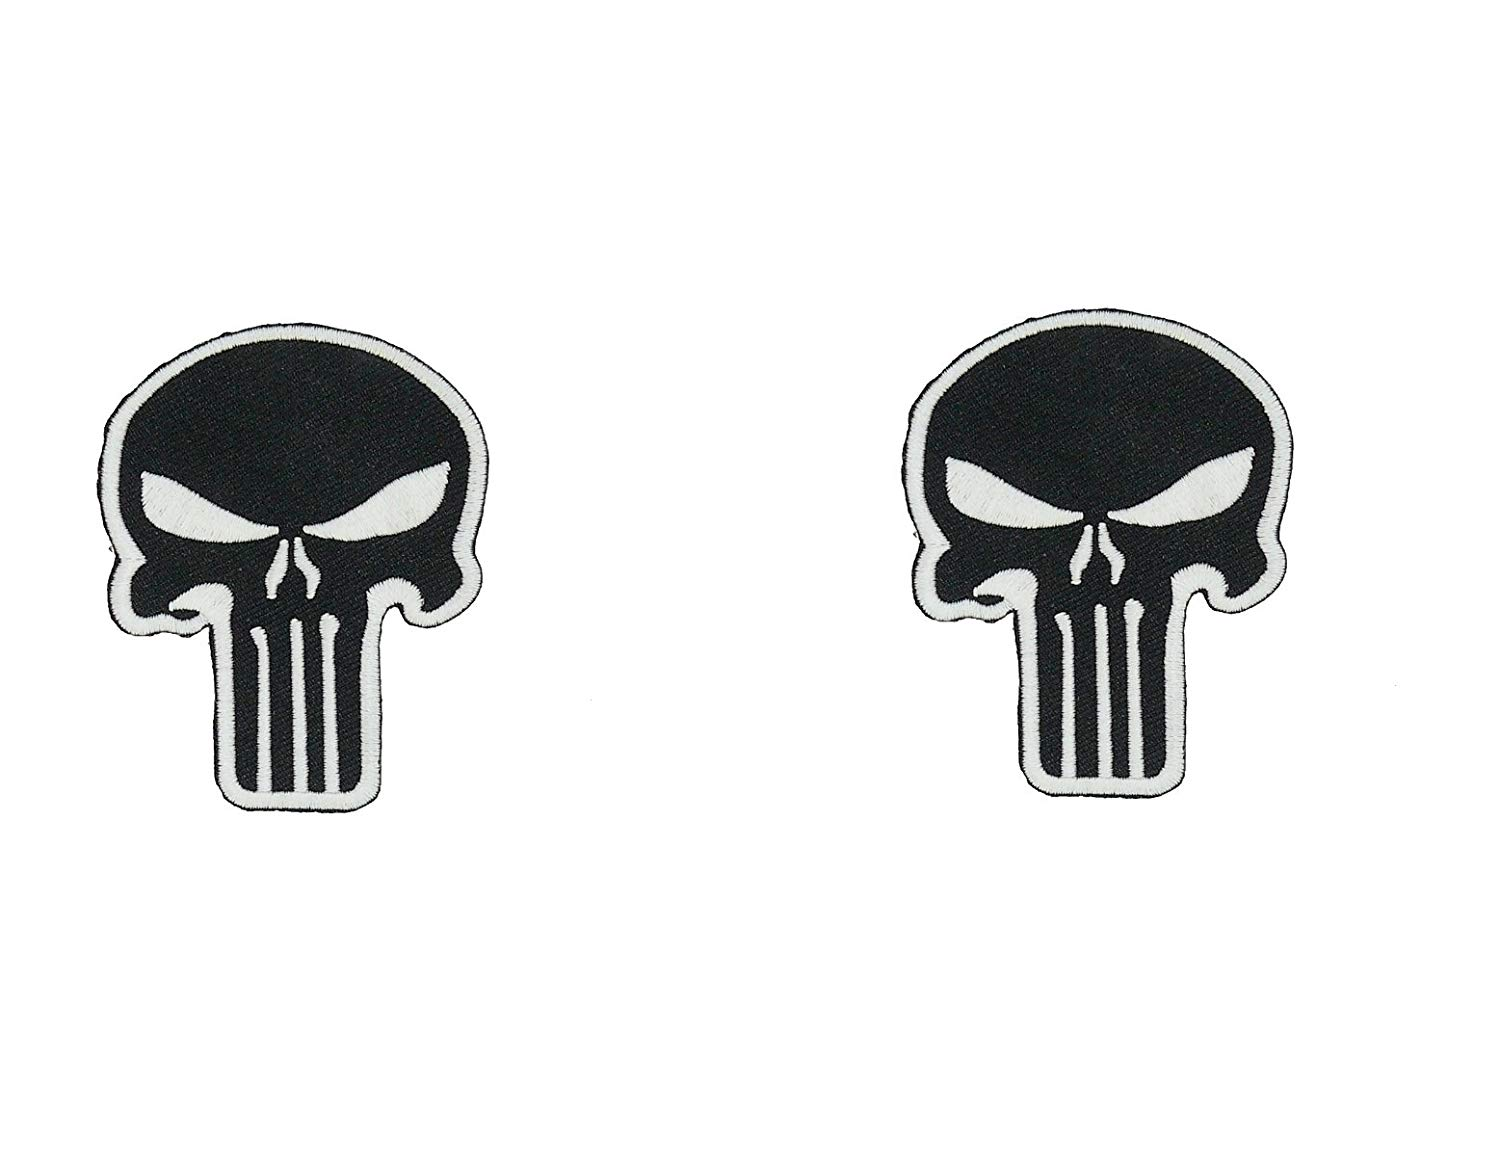 Punisher Skull Patch GLOW IN THE DARK Halloween Costume Jacket Shirt Hat Cap Embroidery Set of 2 Patch Easy Iron/Sew On